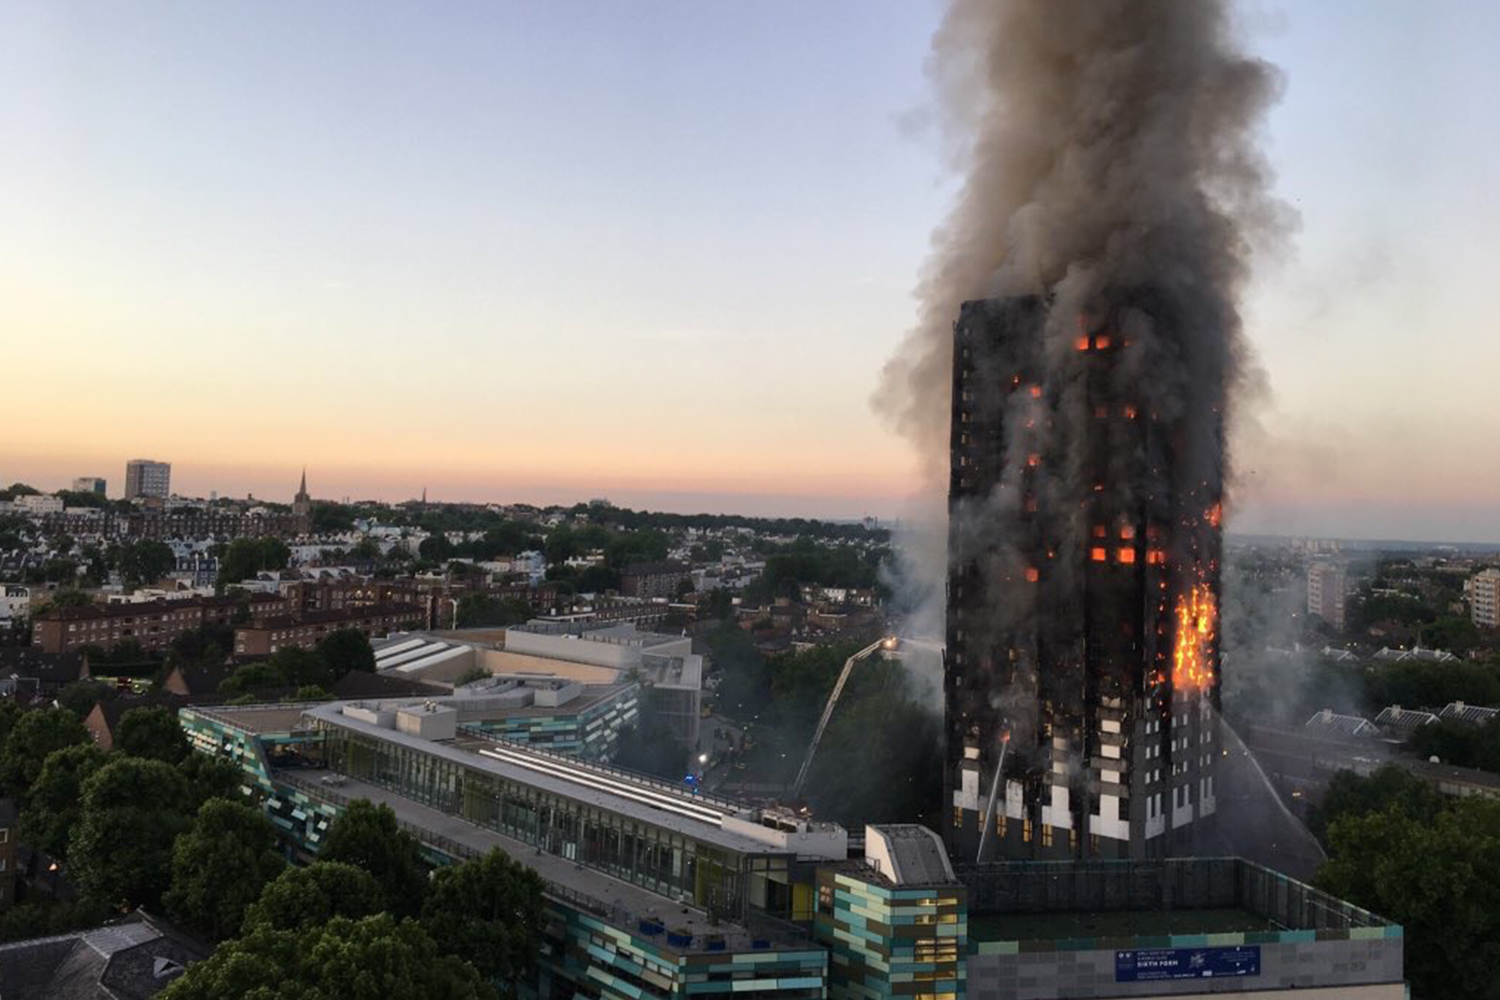 Response To The Grenfell Tower Fire